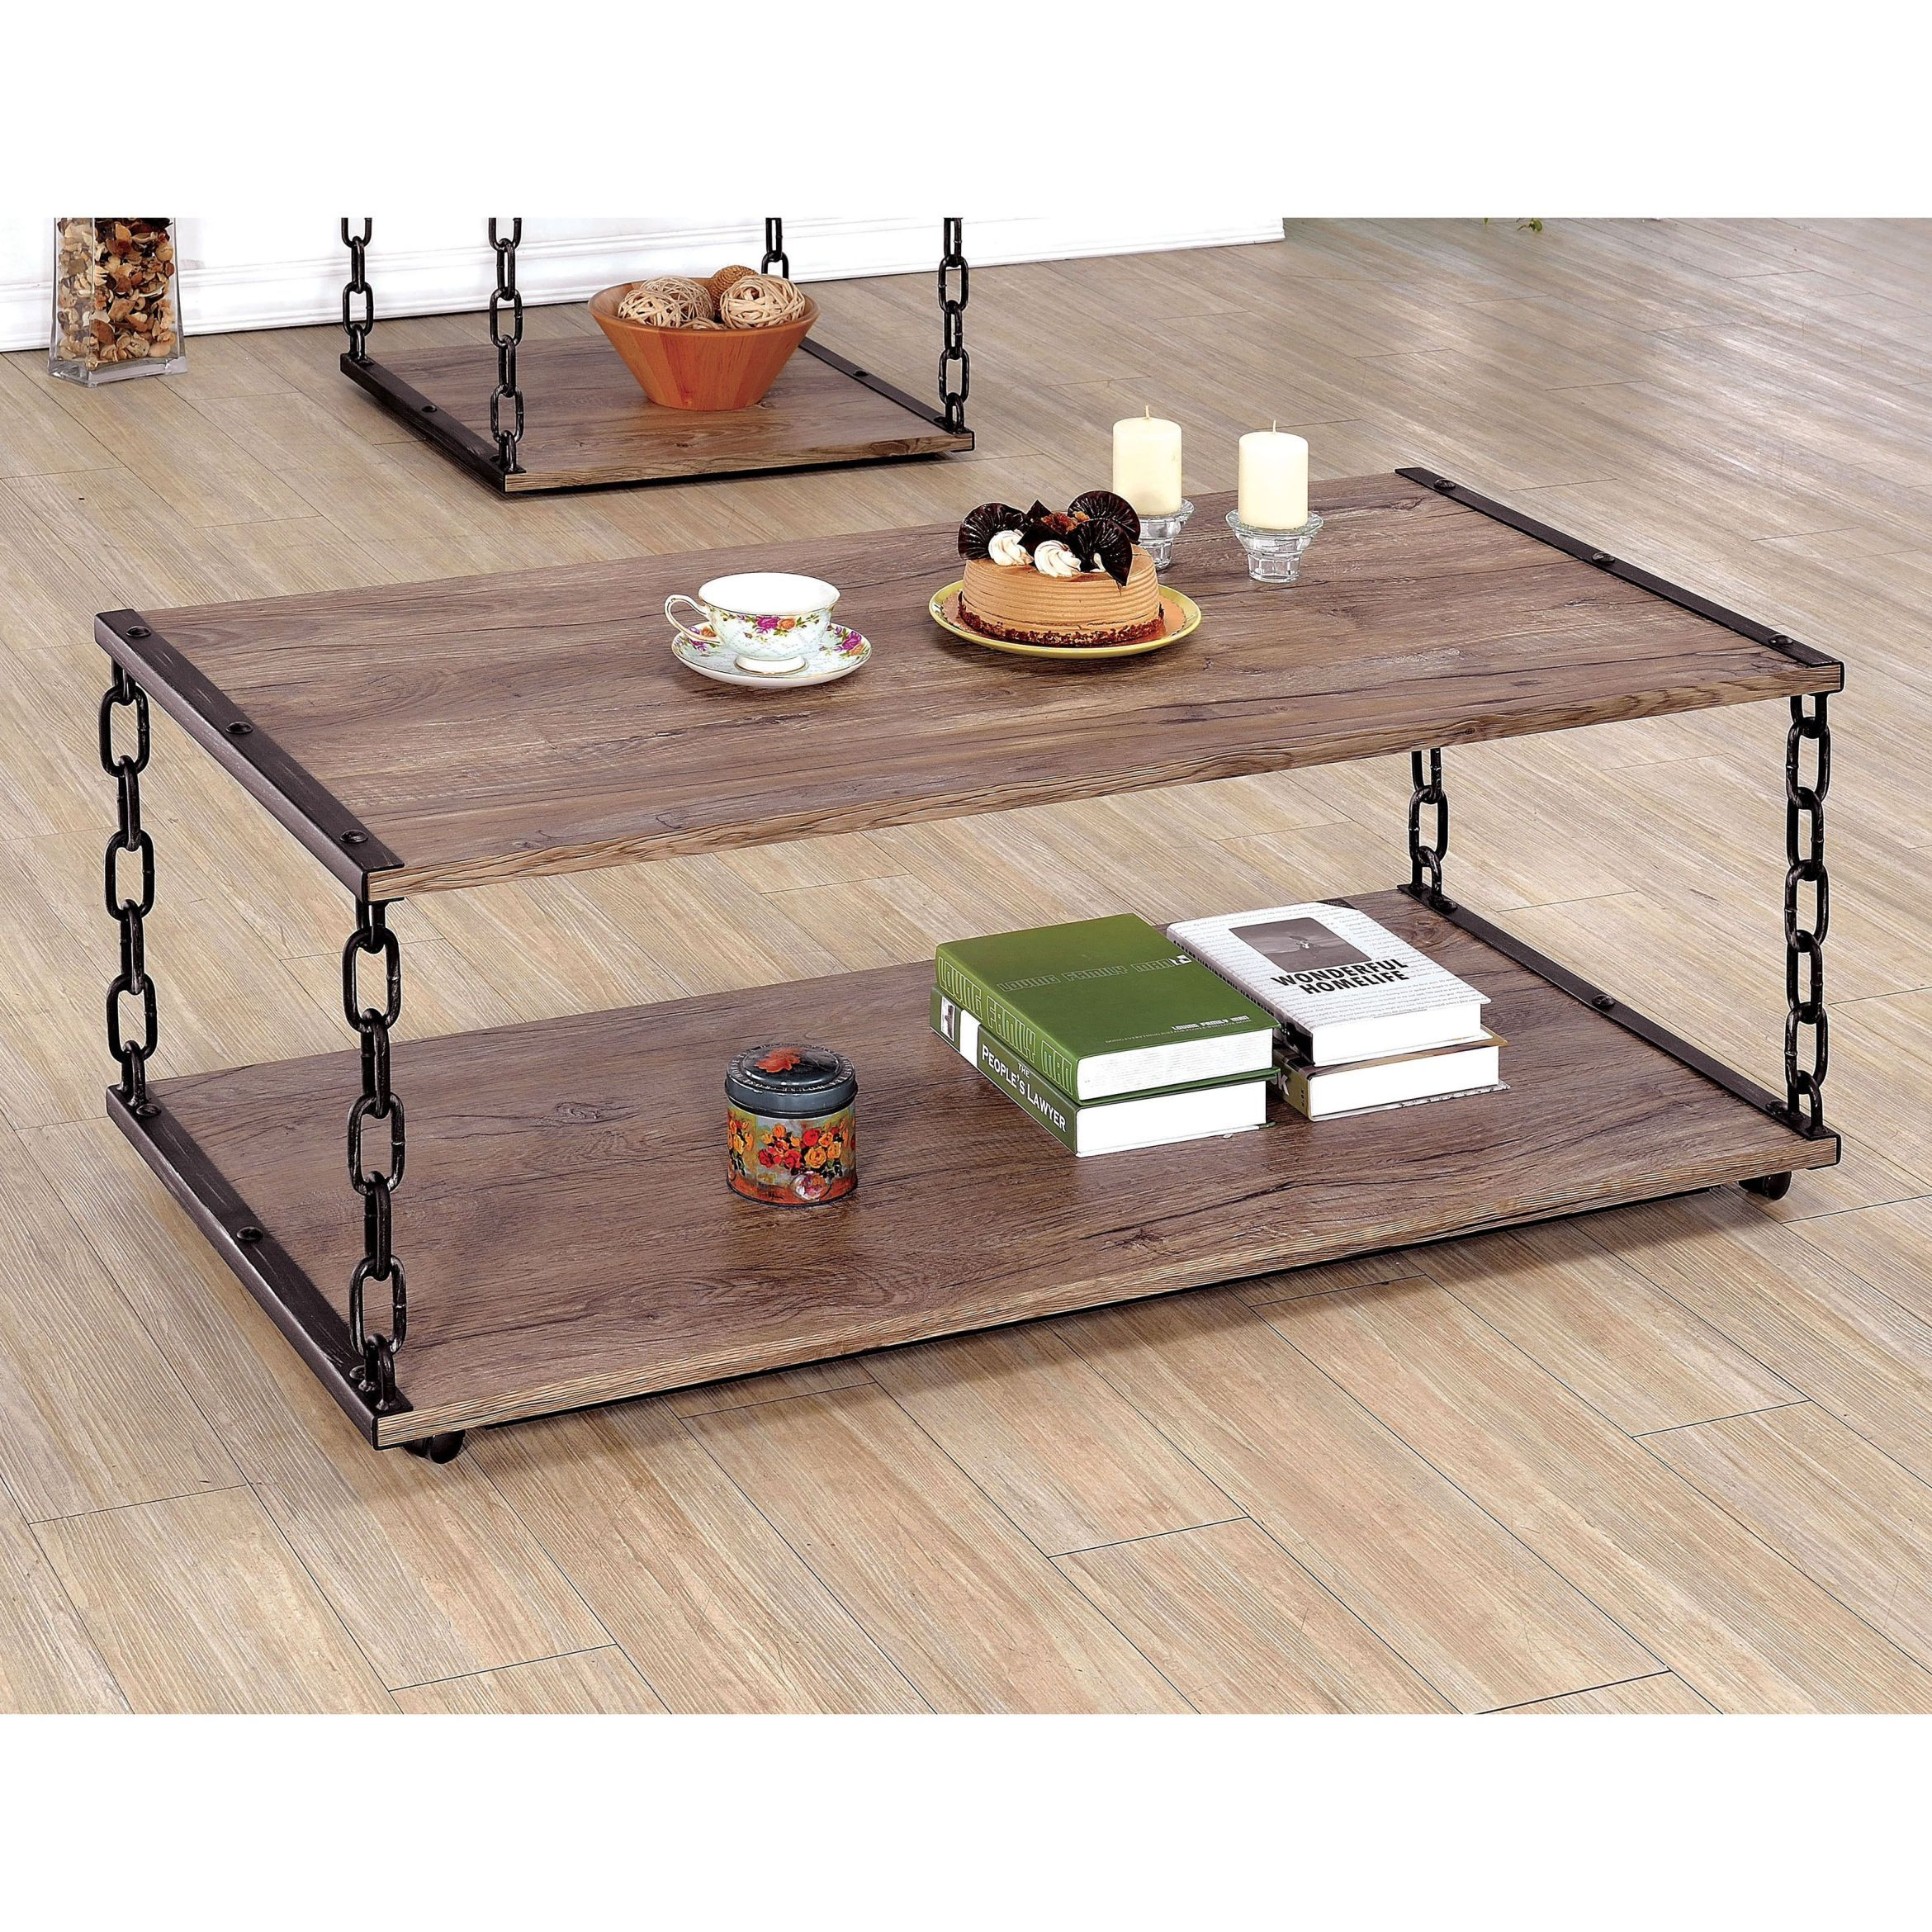 Unique Diy Coffee Table Ideas Easy Paint Homemade Wood Thrift Stores Glass Rustic Storage Creative Cheap On A Welded Furniture Furniture Coffee Table [ 2340 x 2340 Pixel ]